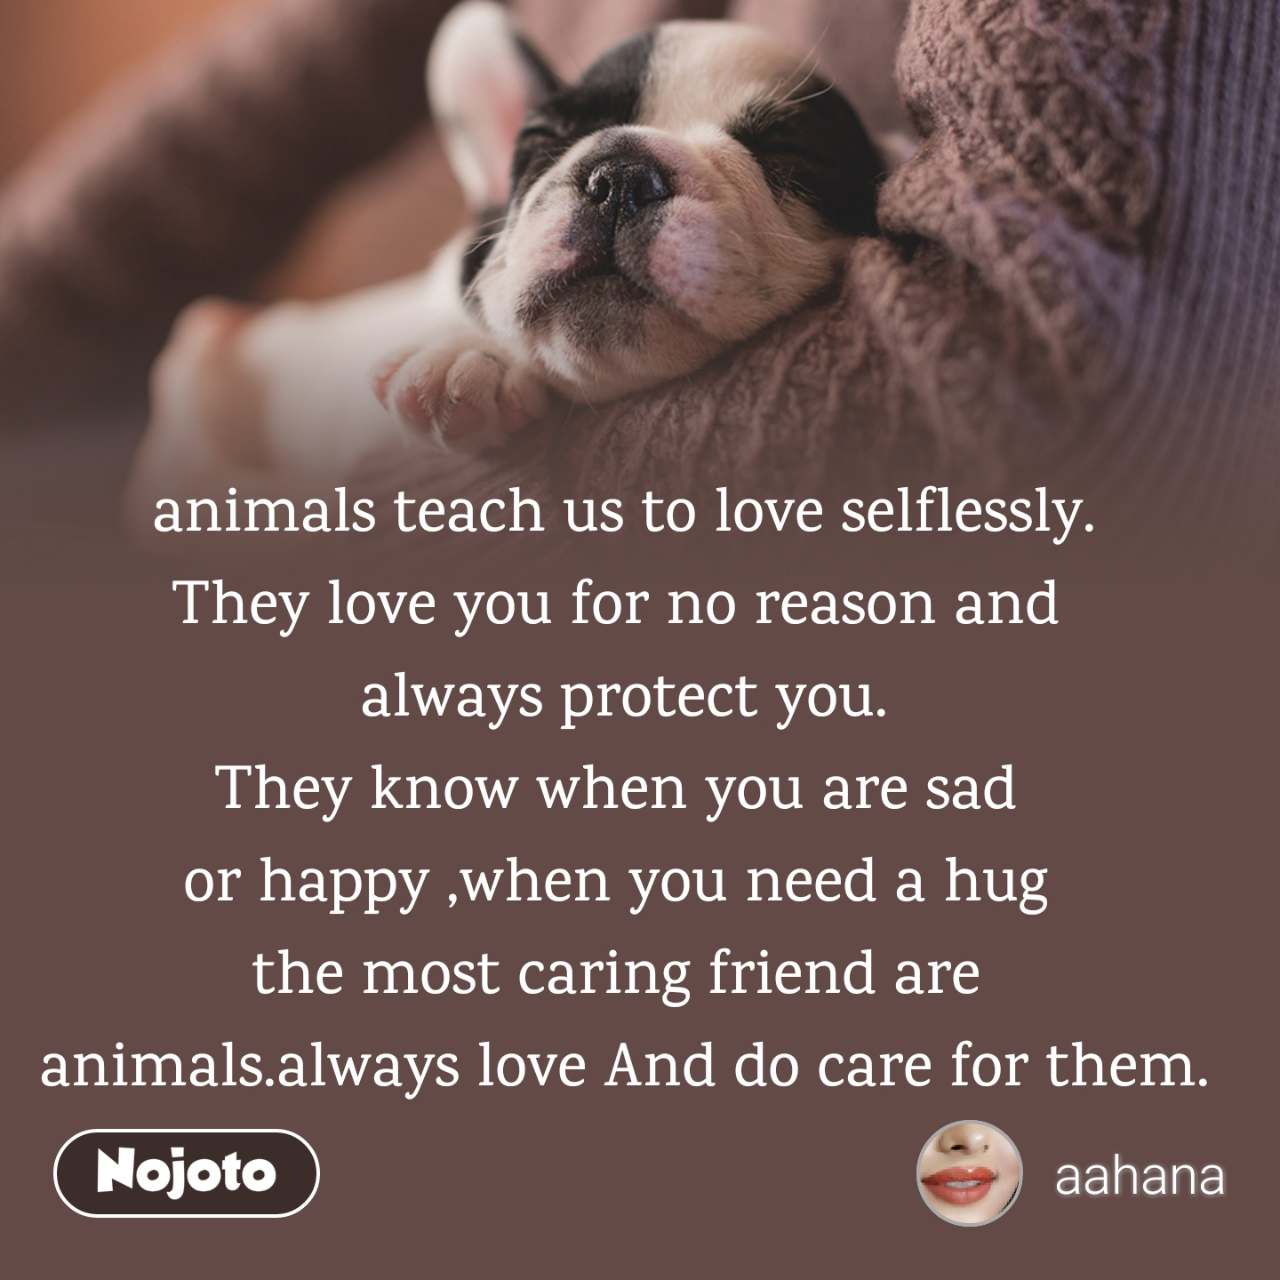 animals teach us to love selflessly. They love you for no reason and  always protect you. They know when you are sad  or happy ,when you need a hug  the most caring friend are  animals.always love And do care for them.